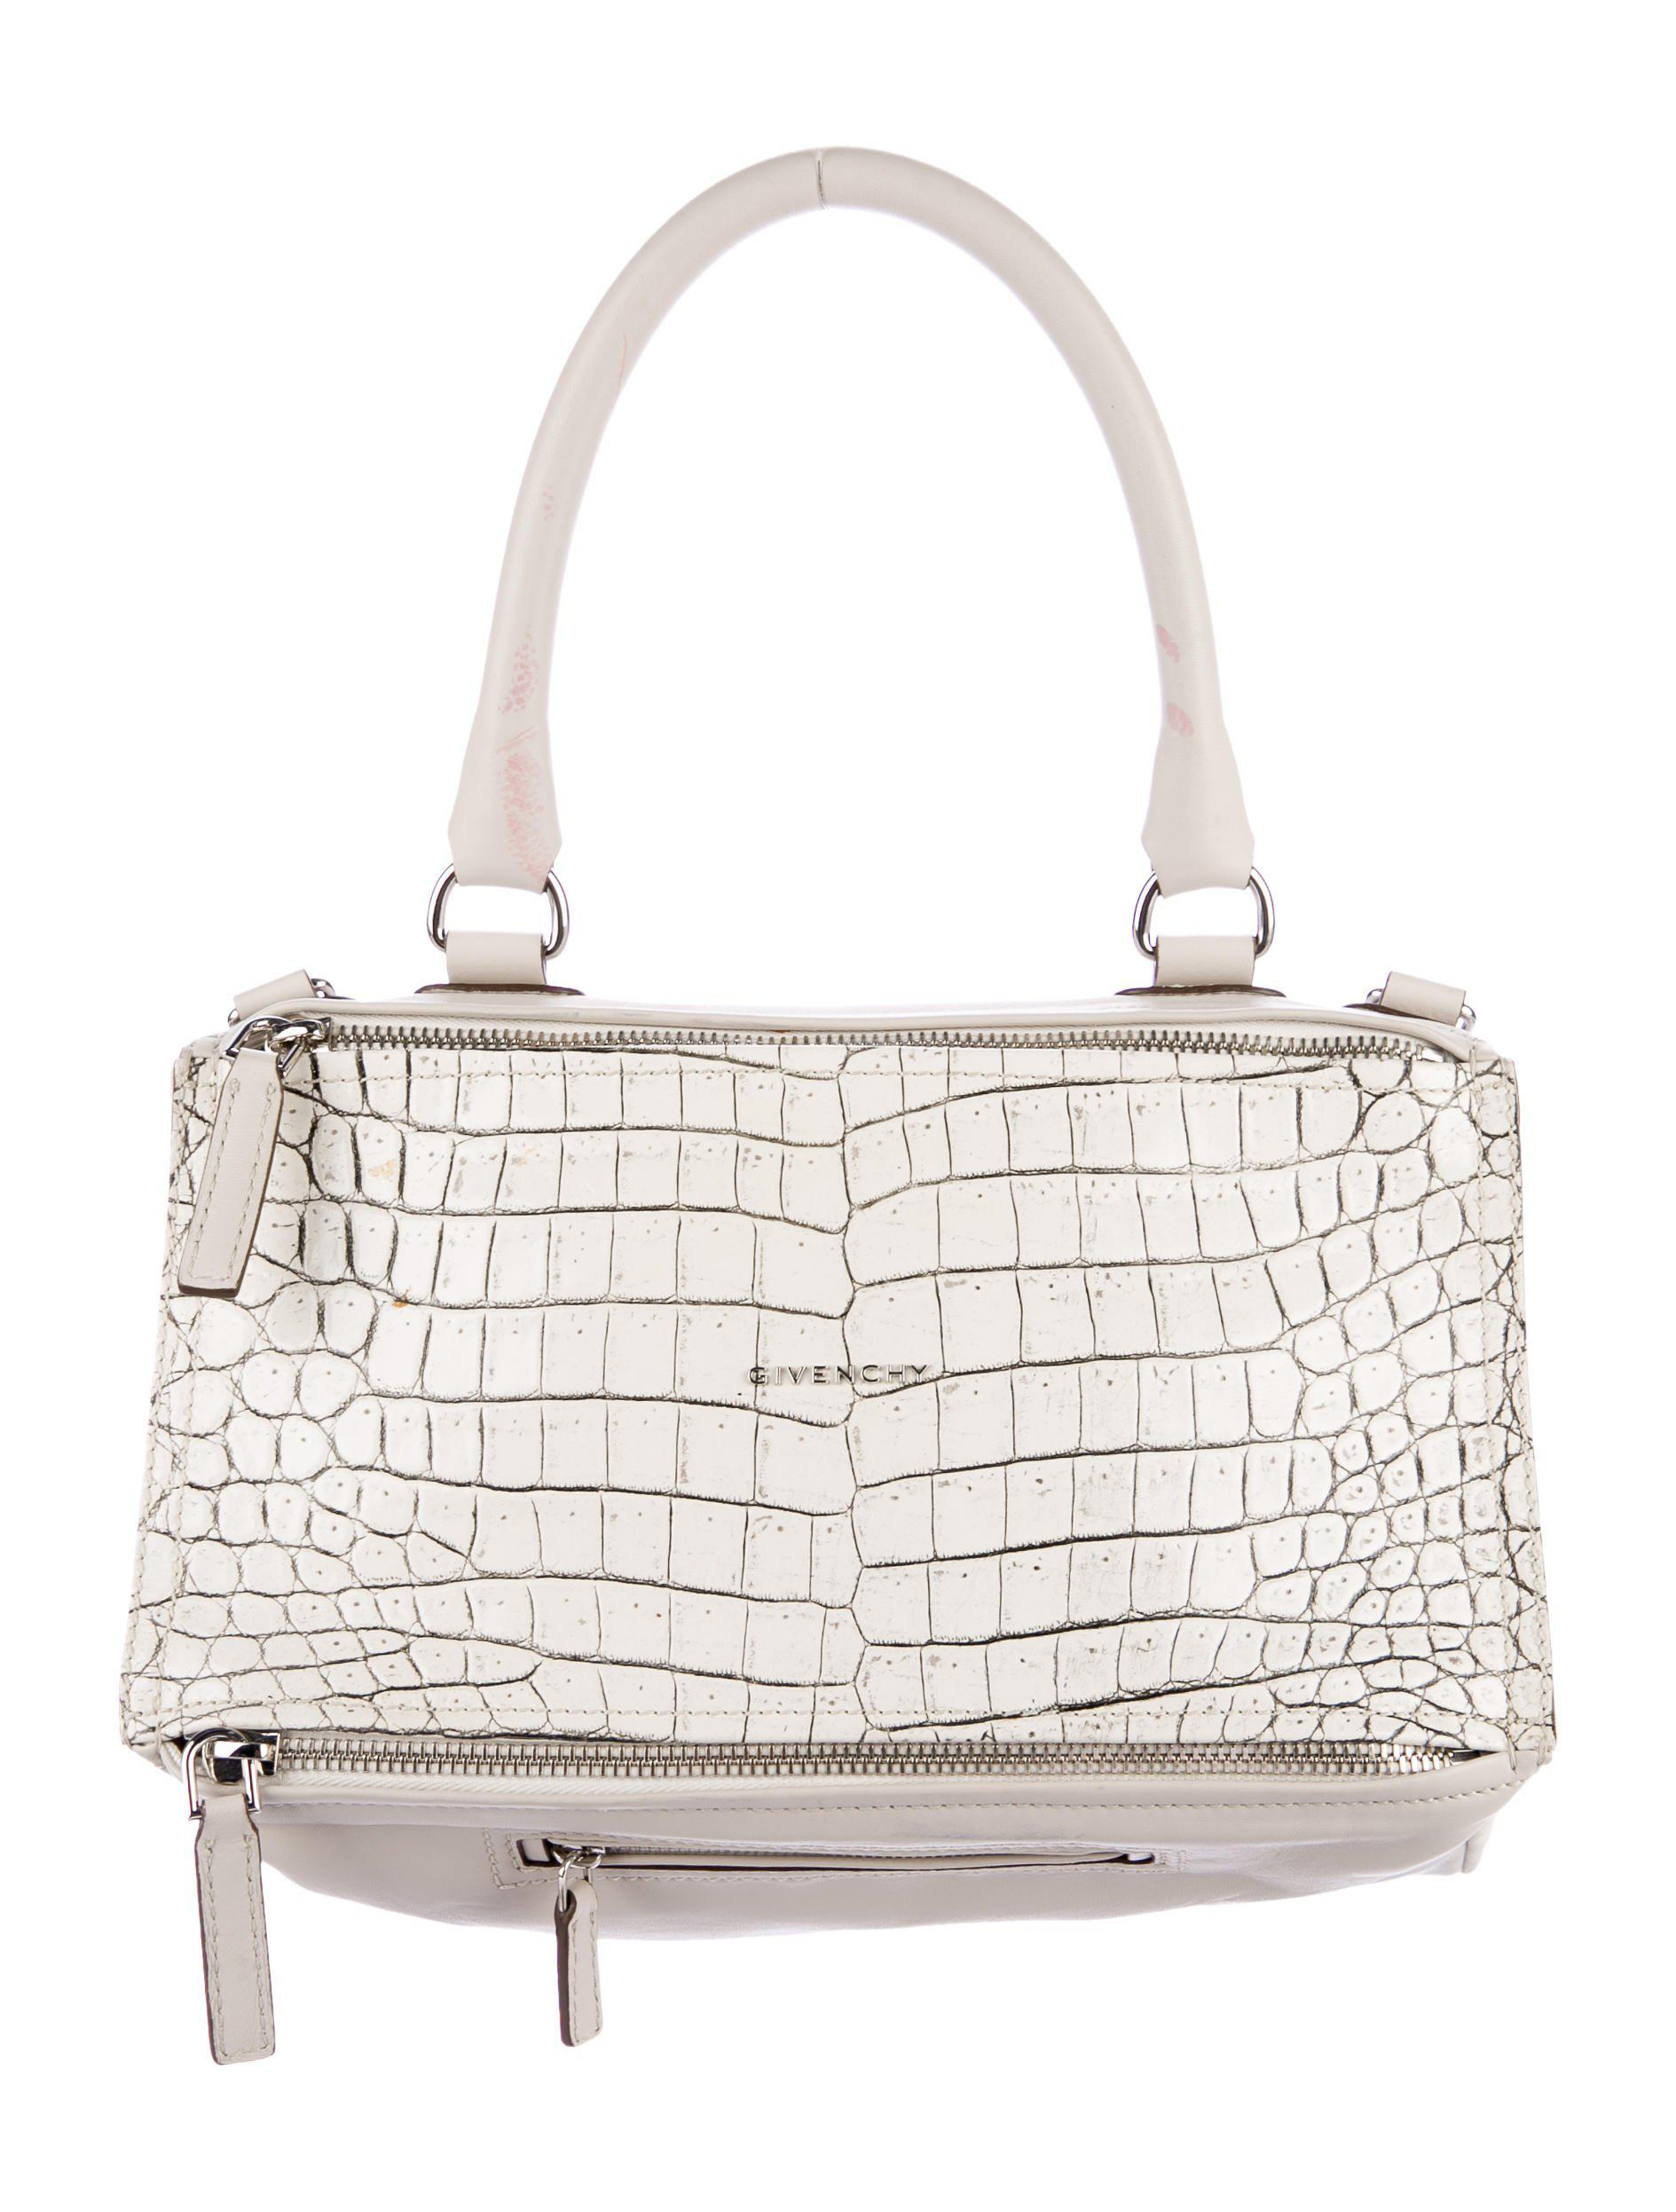 6ae5945b60 Lyst - Givenchy Embossed Medium Pandora Satchel White in Metallic